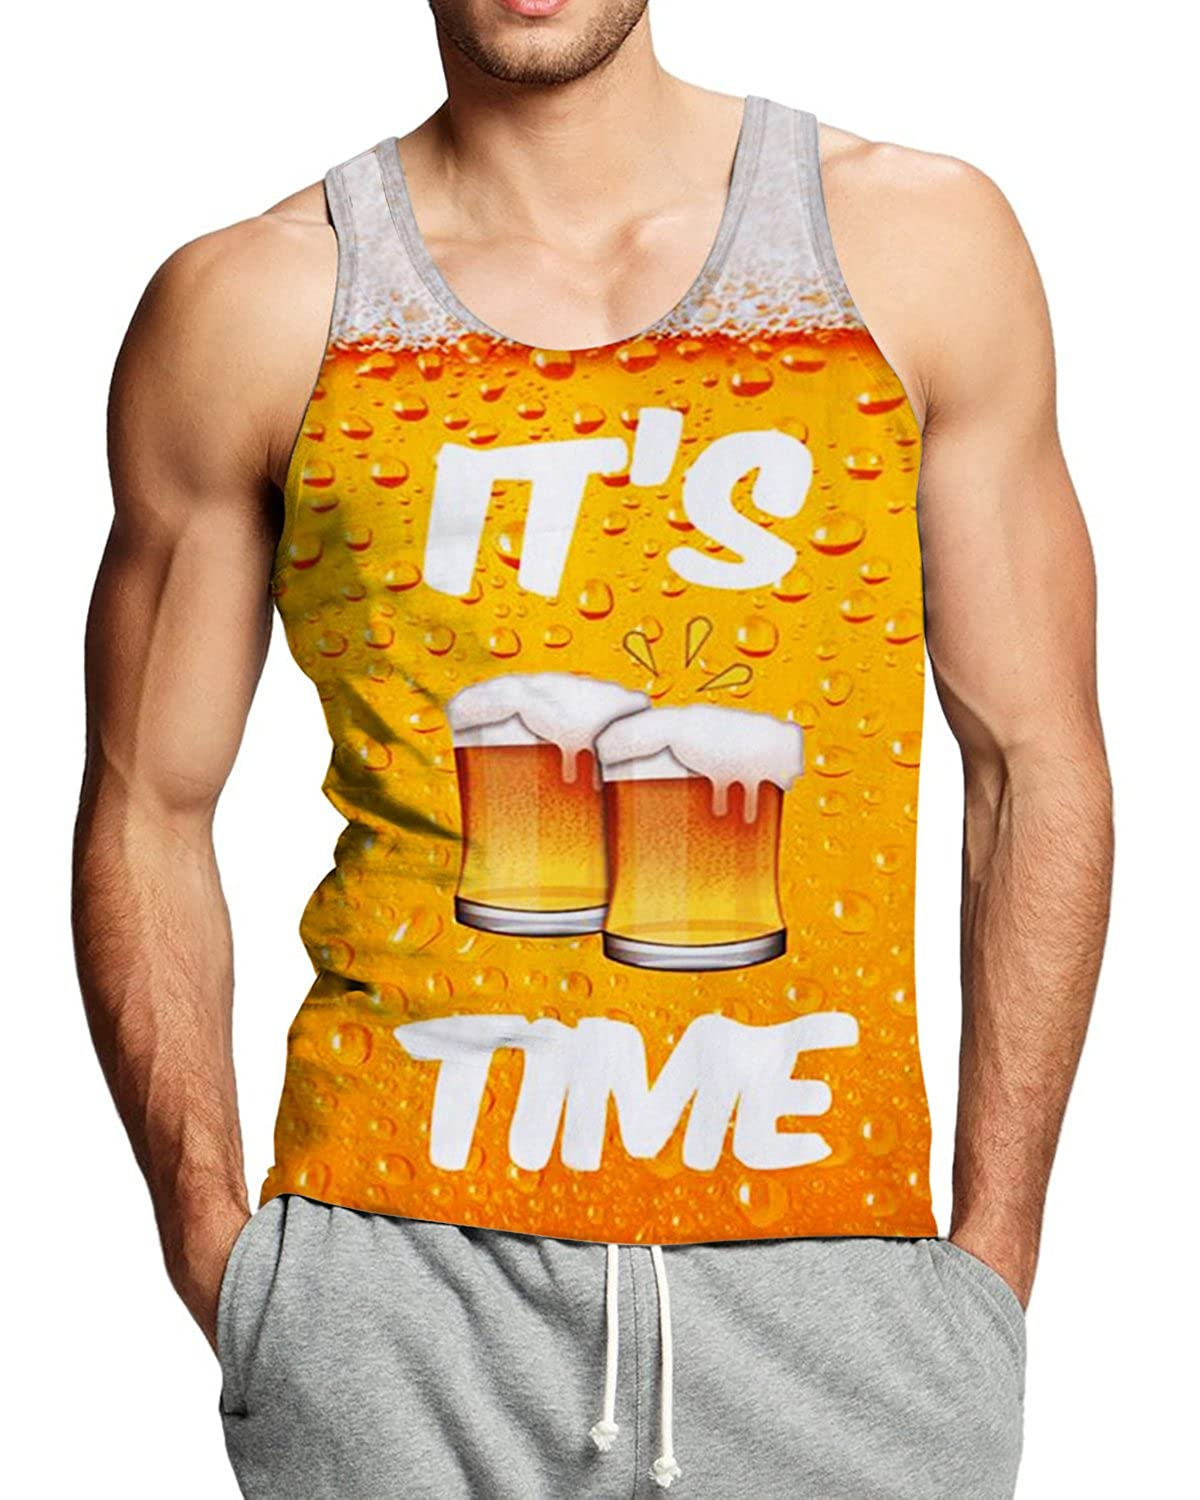 763152625f781a Please check the size chart found your size for best fit or order one size  up if you want loose style. 3D Graphic printed personalized mens tank tops  slim ...